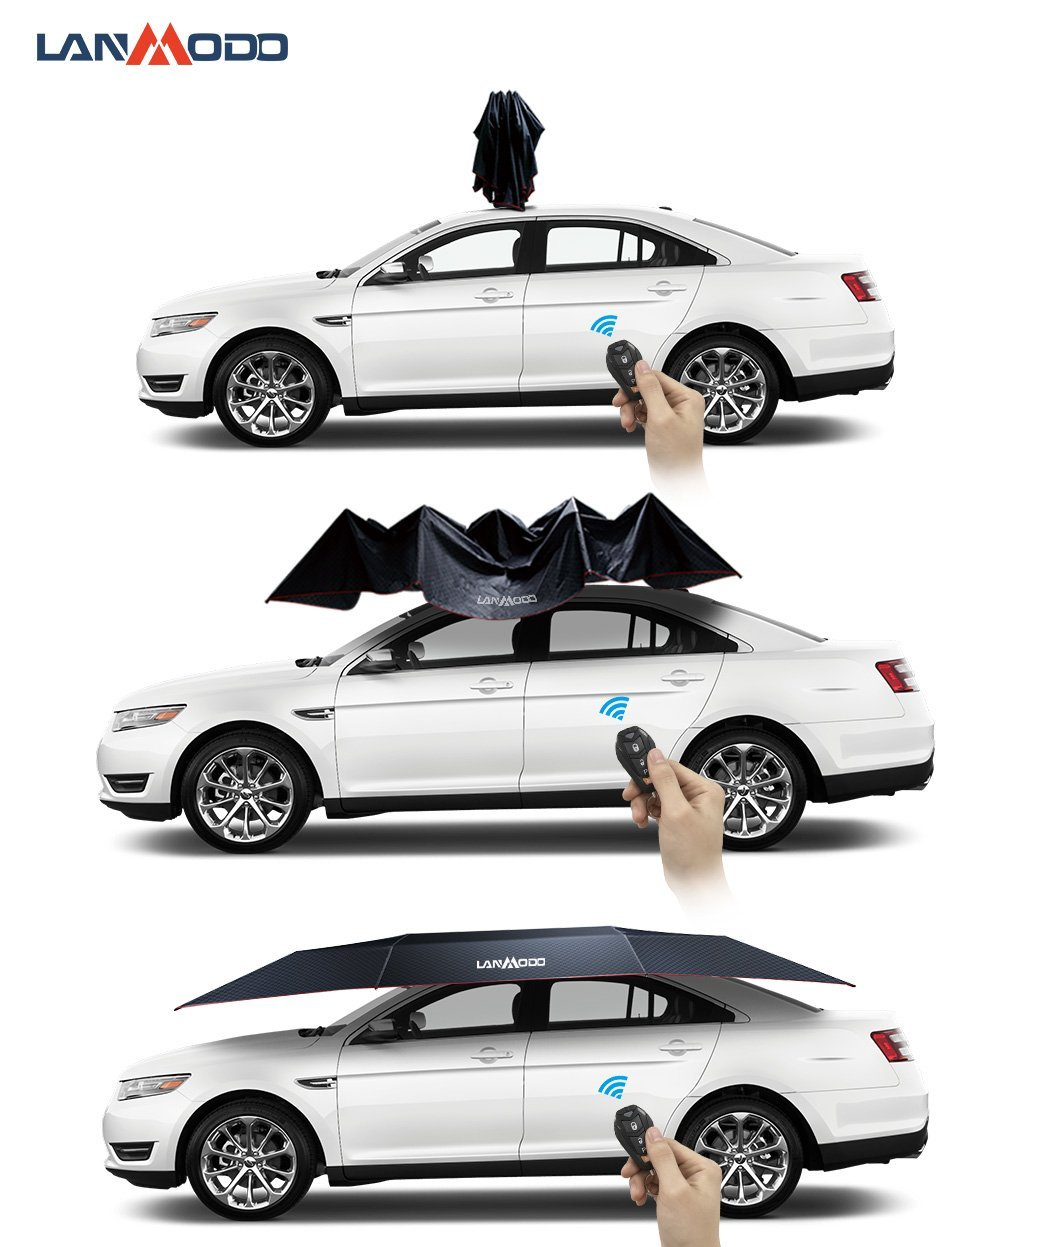 Lanmodo Automatic Car Umbrella Protects Against Sun Weather And More Not Any Gadgets